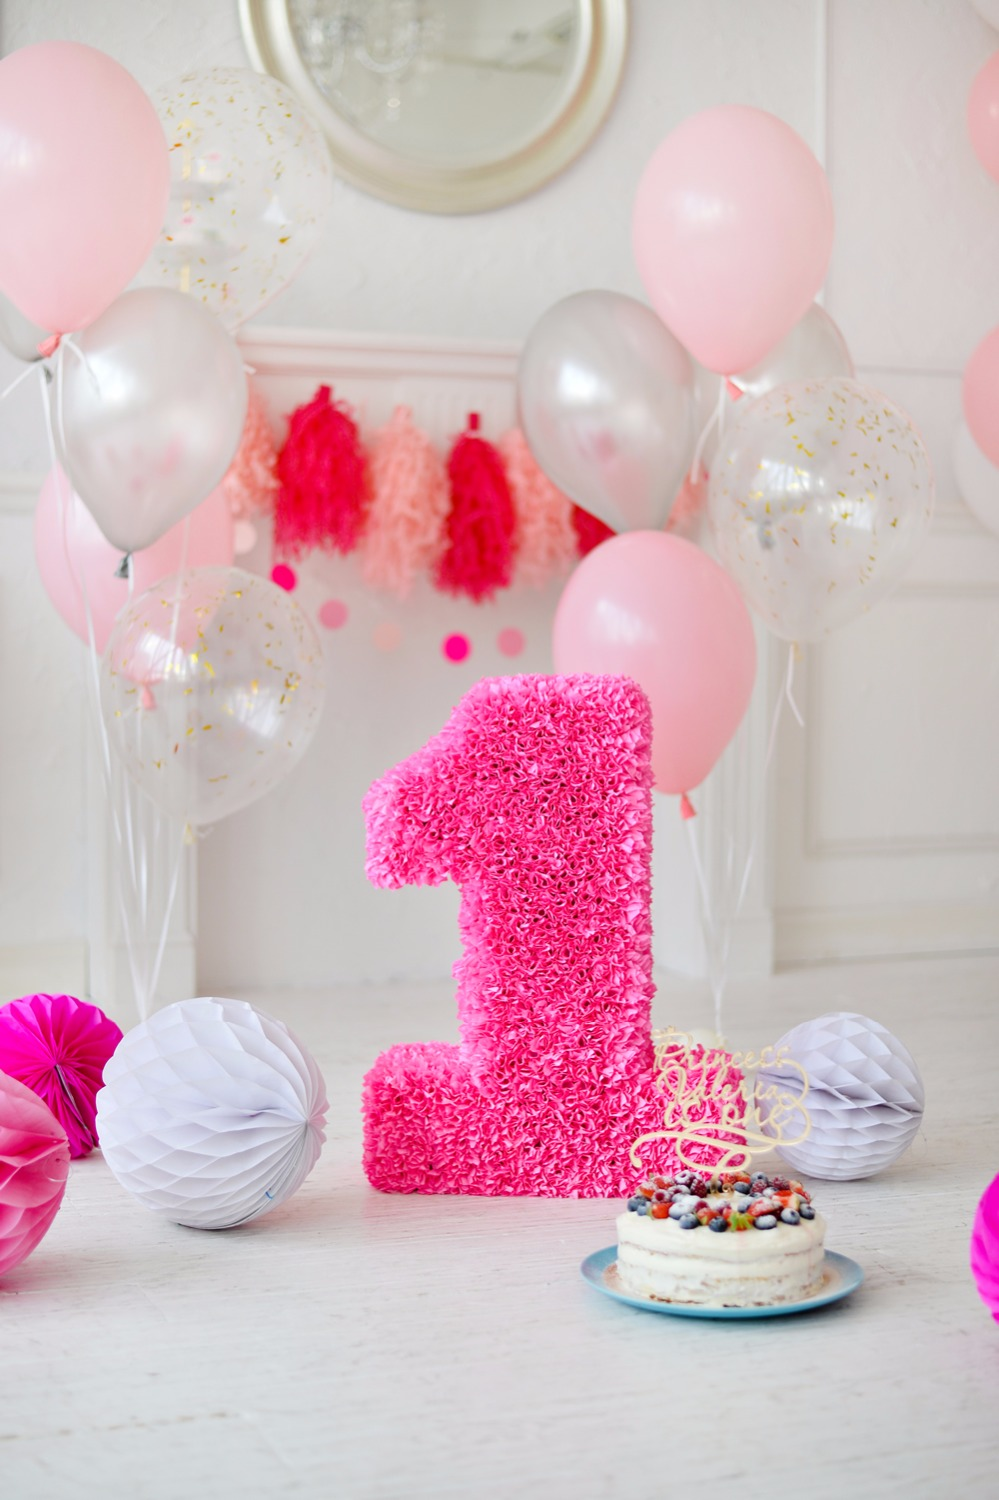 baby first birthday backdrop ; LIFE-MAGIC-BOX-Balloons-Cakes-Backdrop-Photography-Background-First-Birthday-Backdrop-Baby-Photoshoot-1st-Birthday-Backdrops